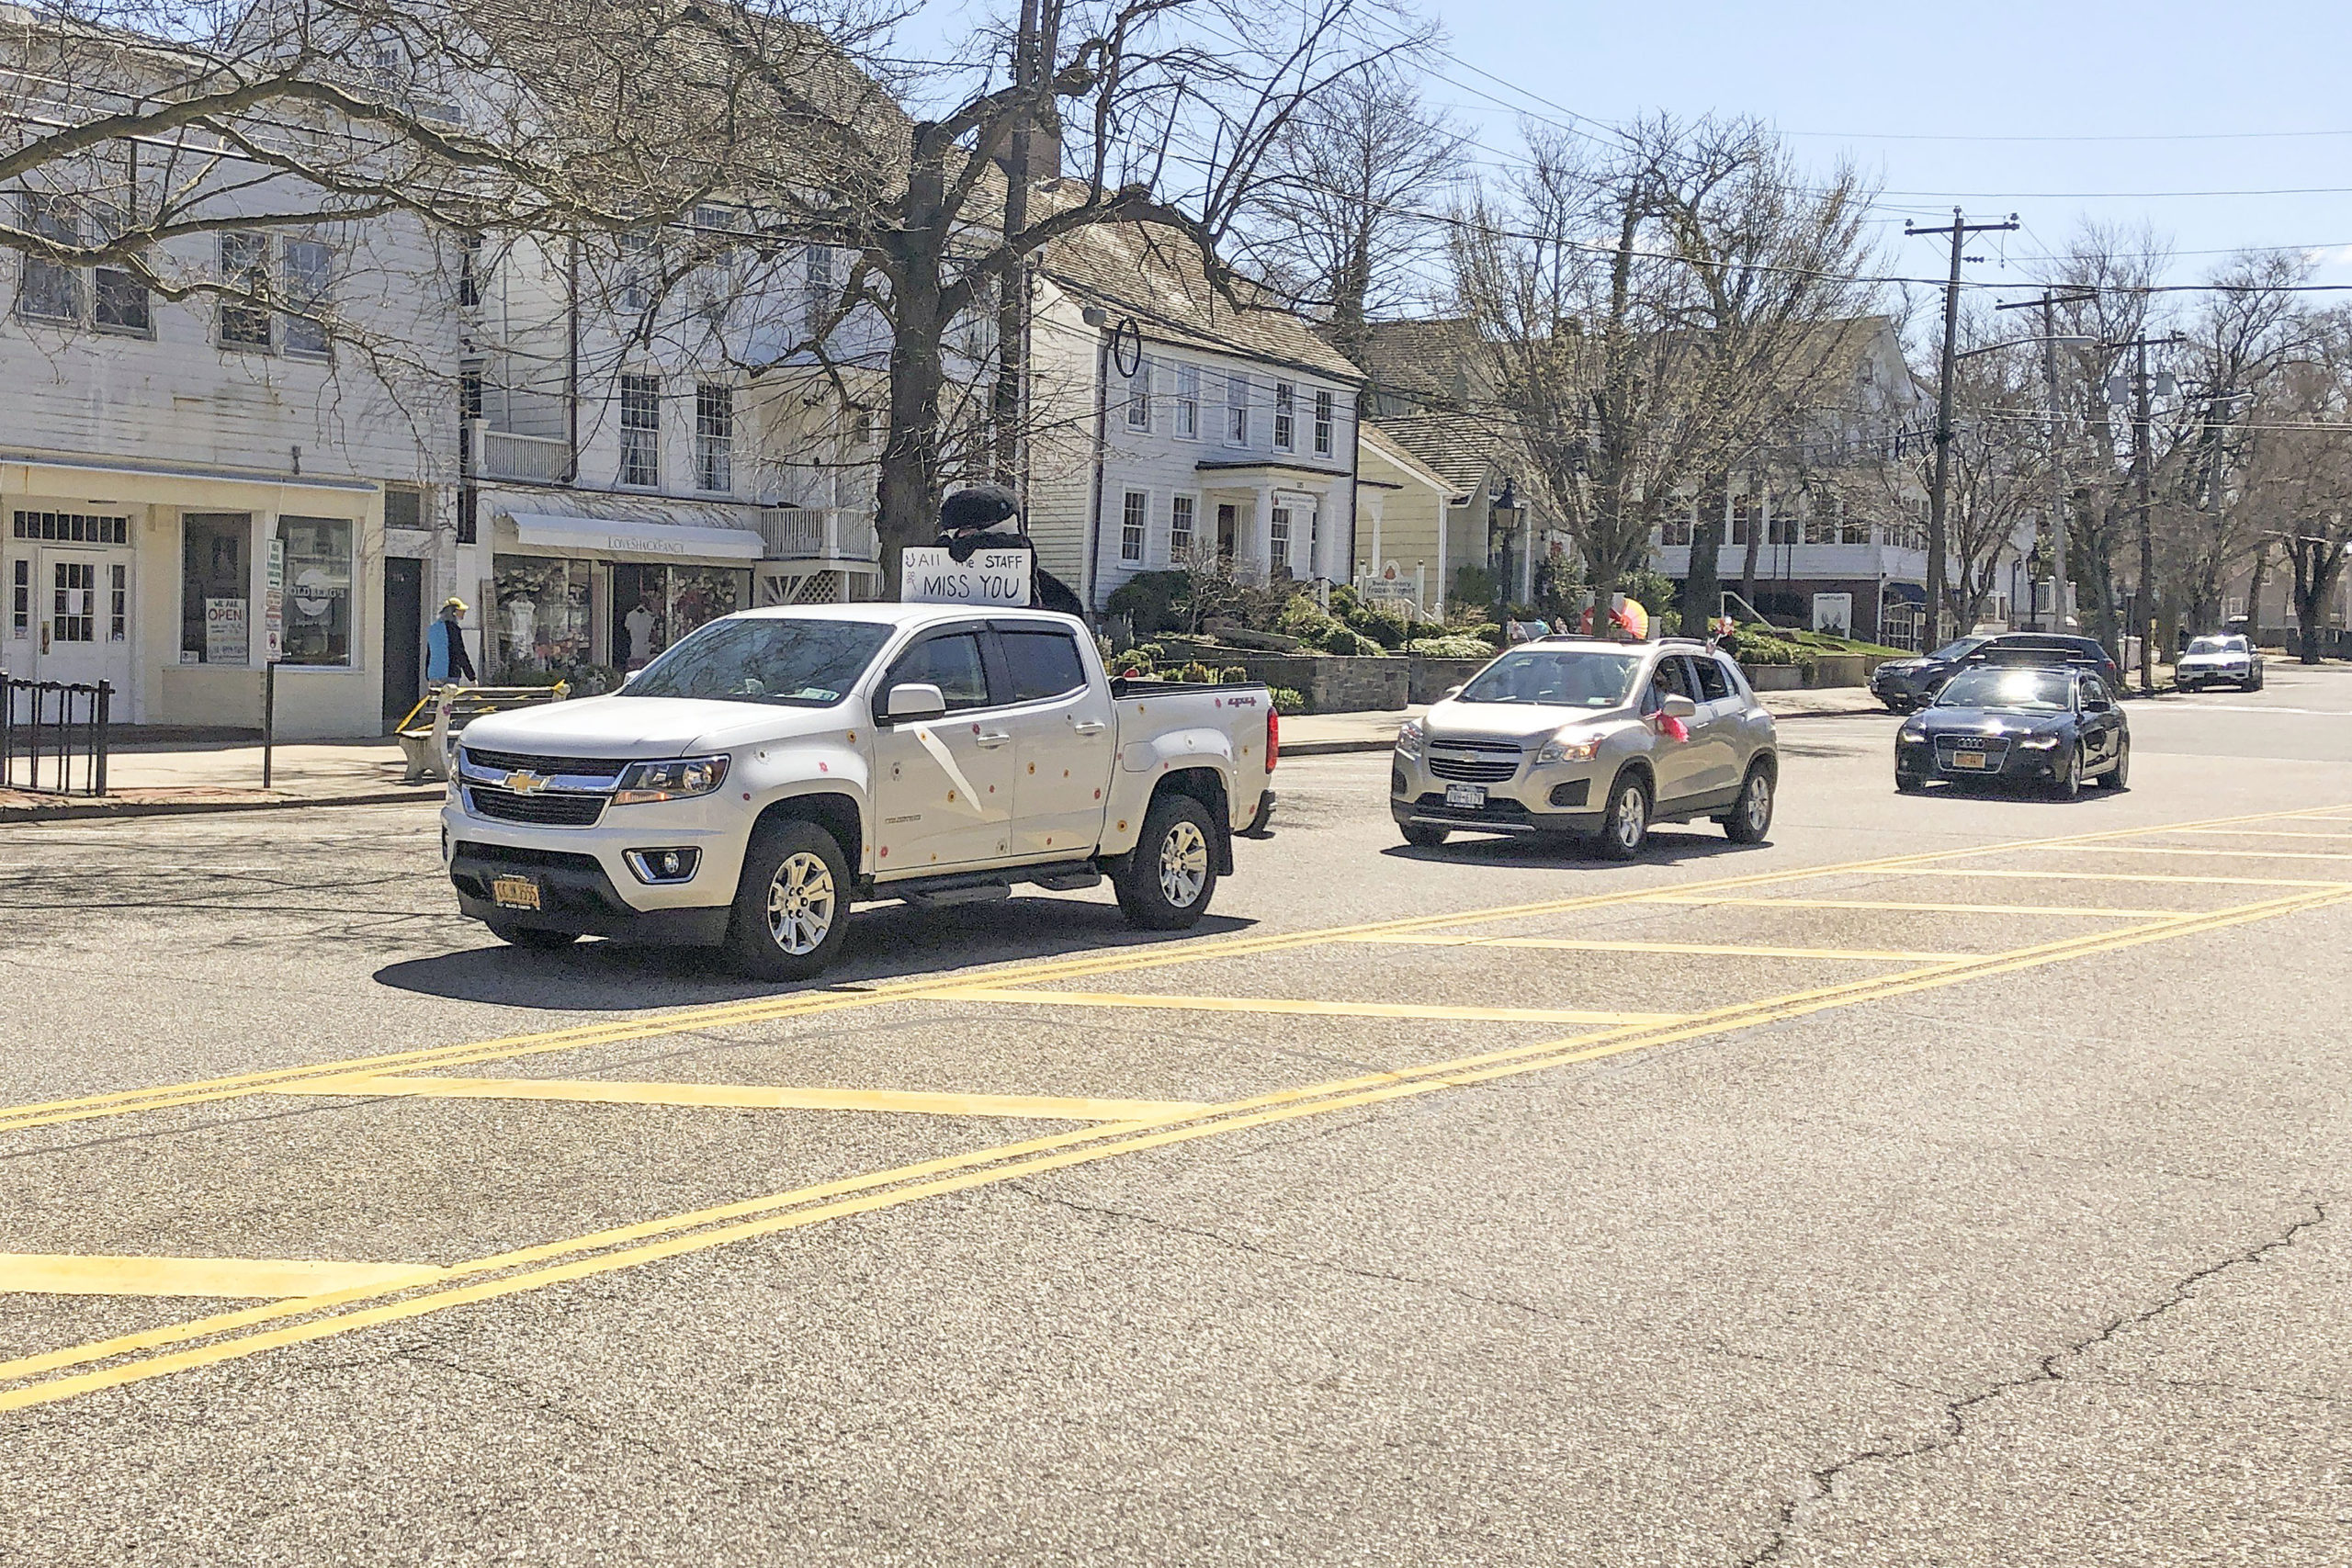 Sag Harbor Elementary School teacher Cathy Carlozzi led a small, impromptu parade down Main Street in Sag Harbor on Monday with a special message for students: